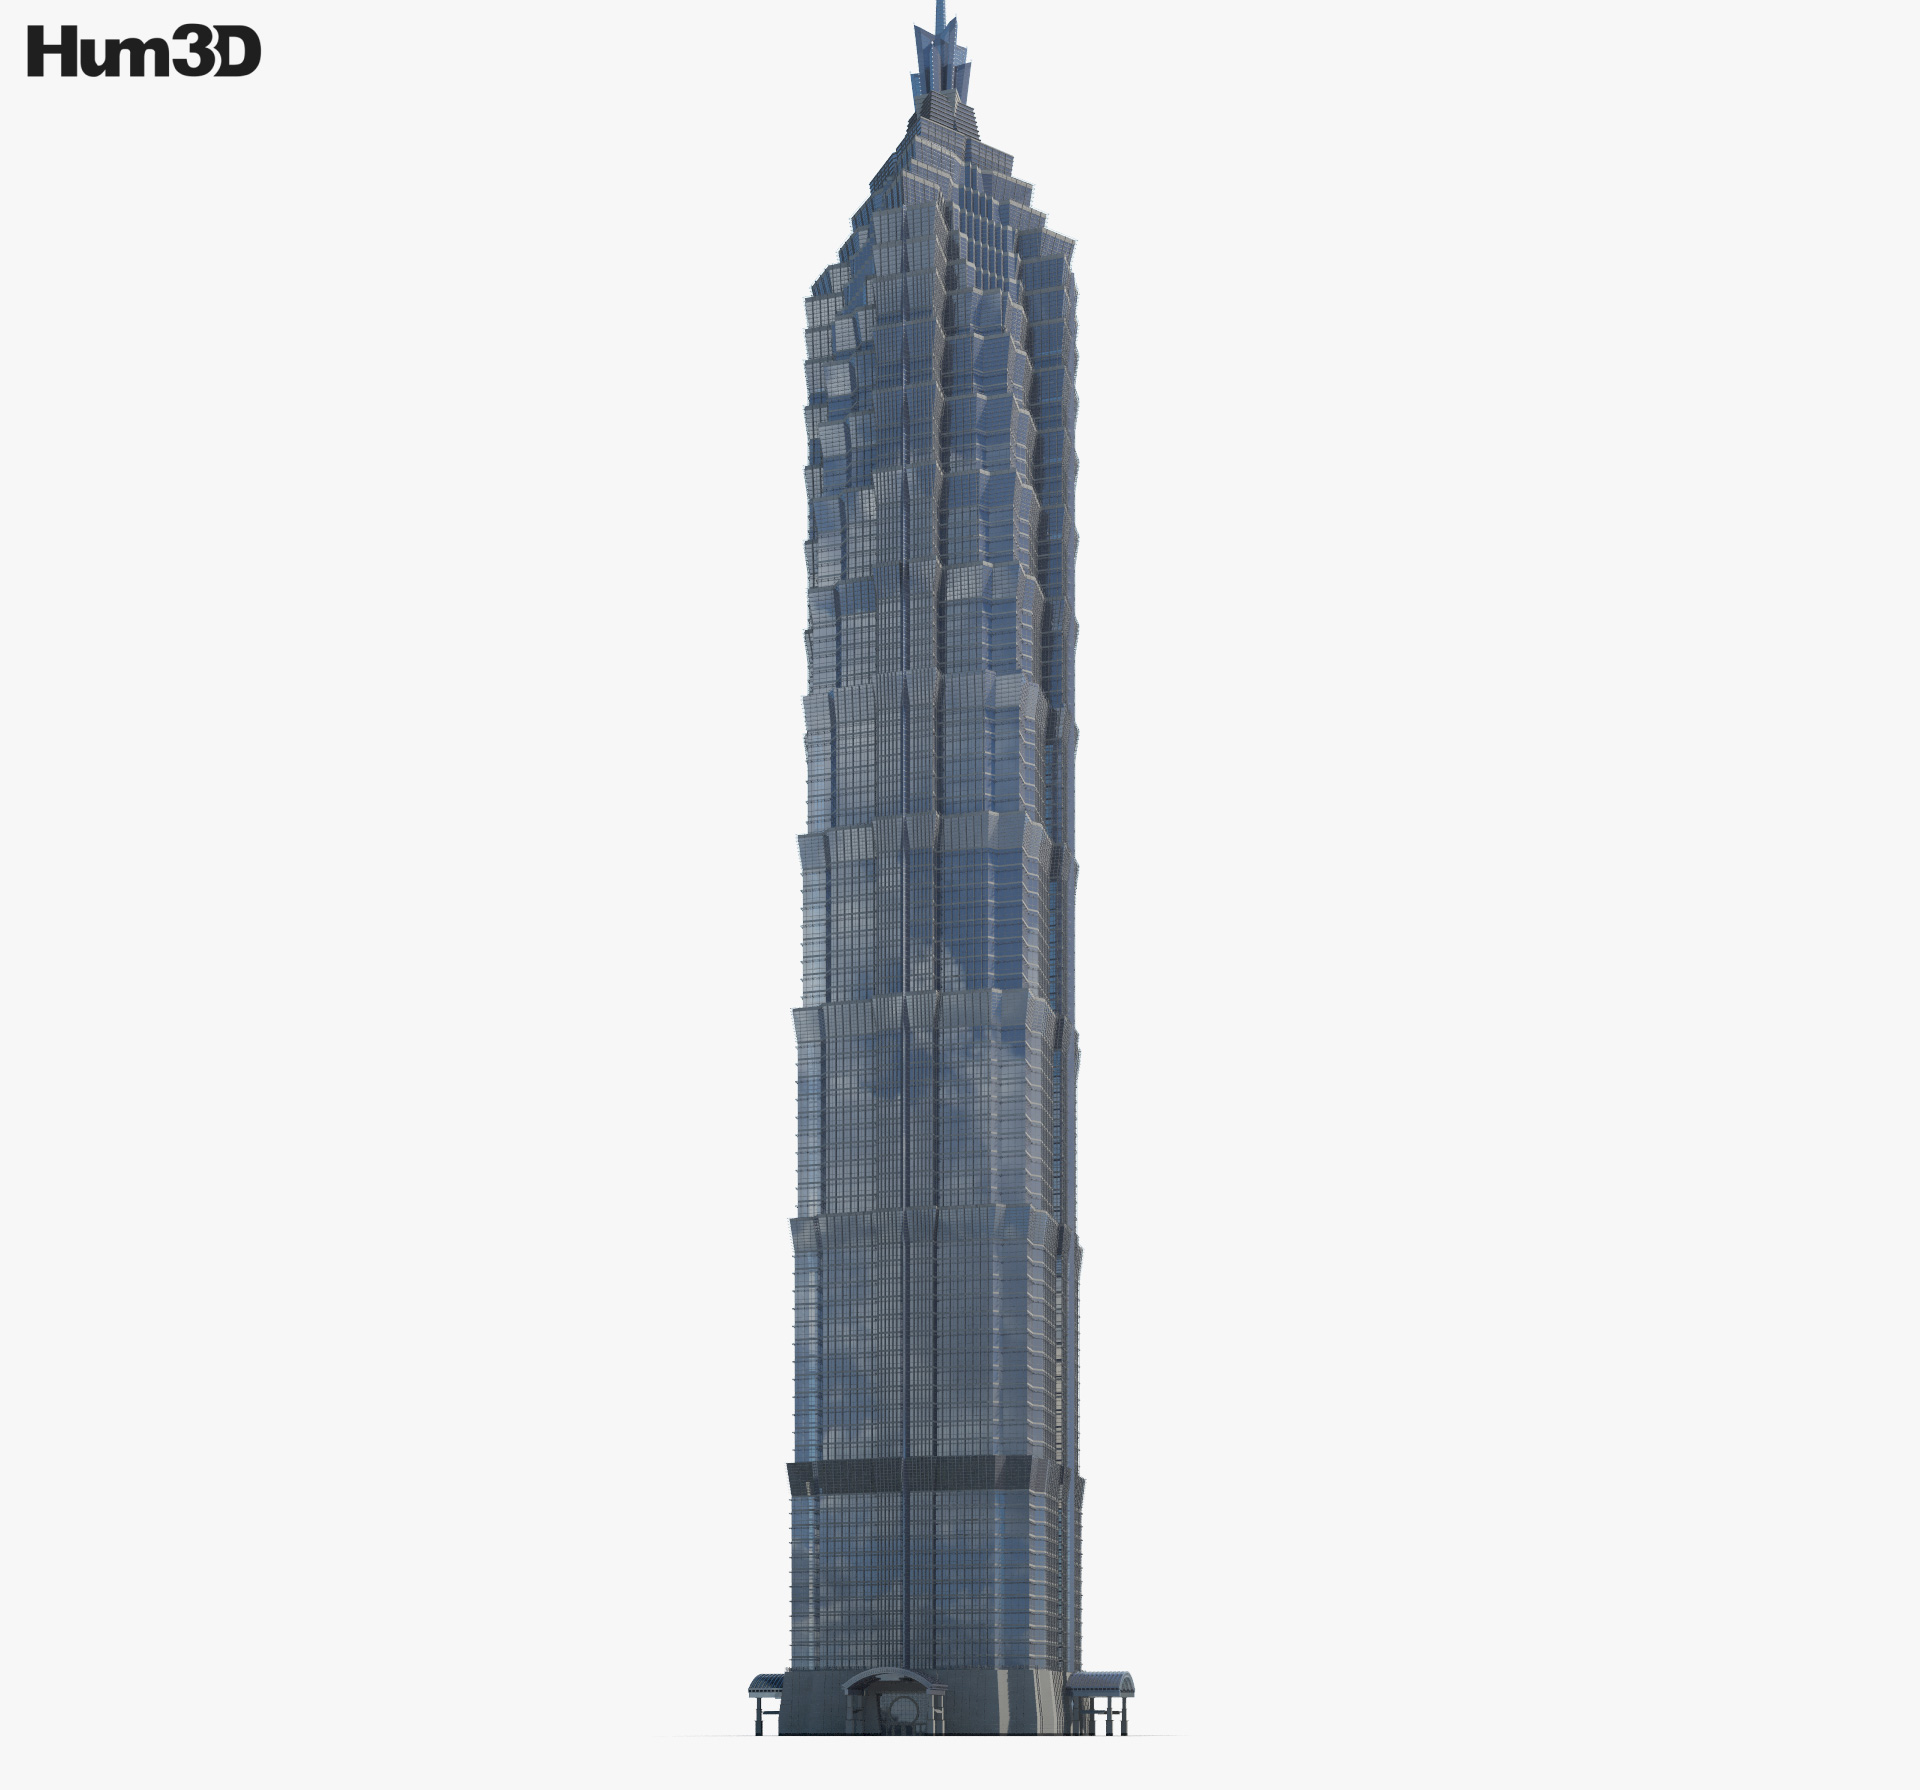 Jin Mao Tower 3d model